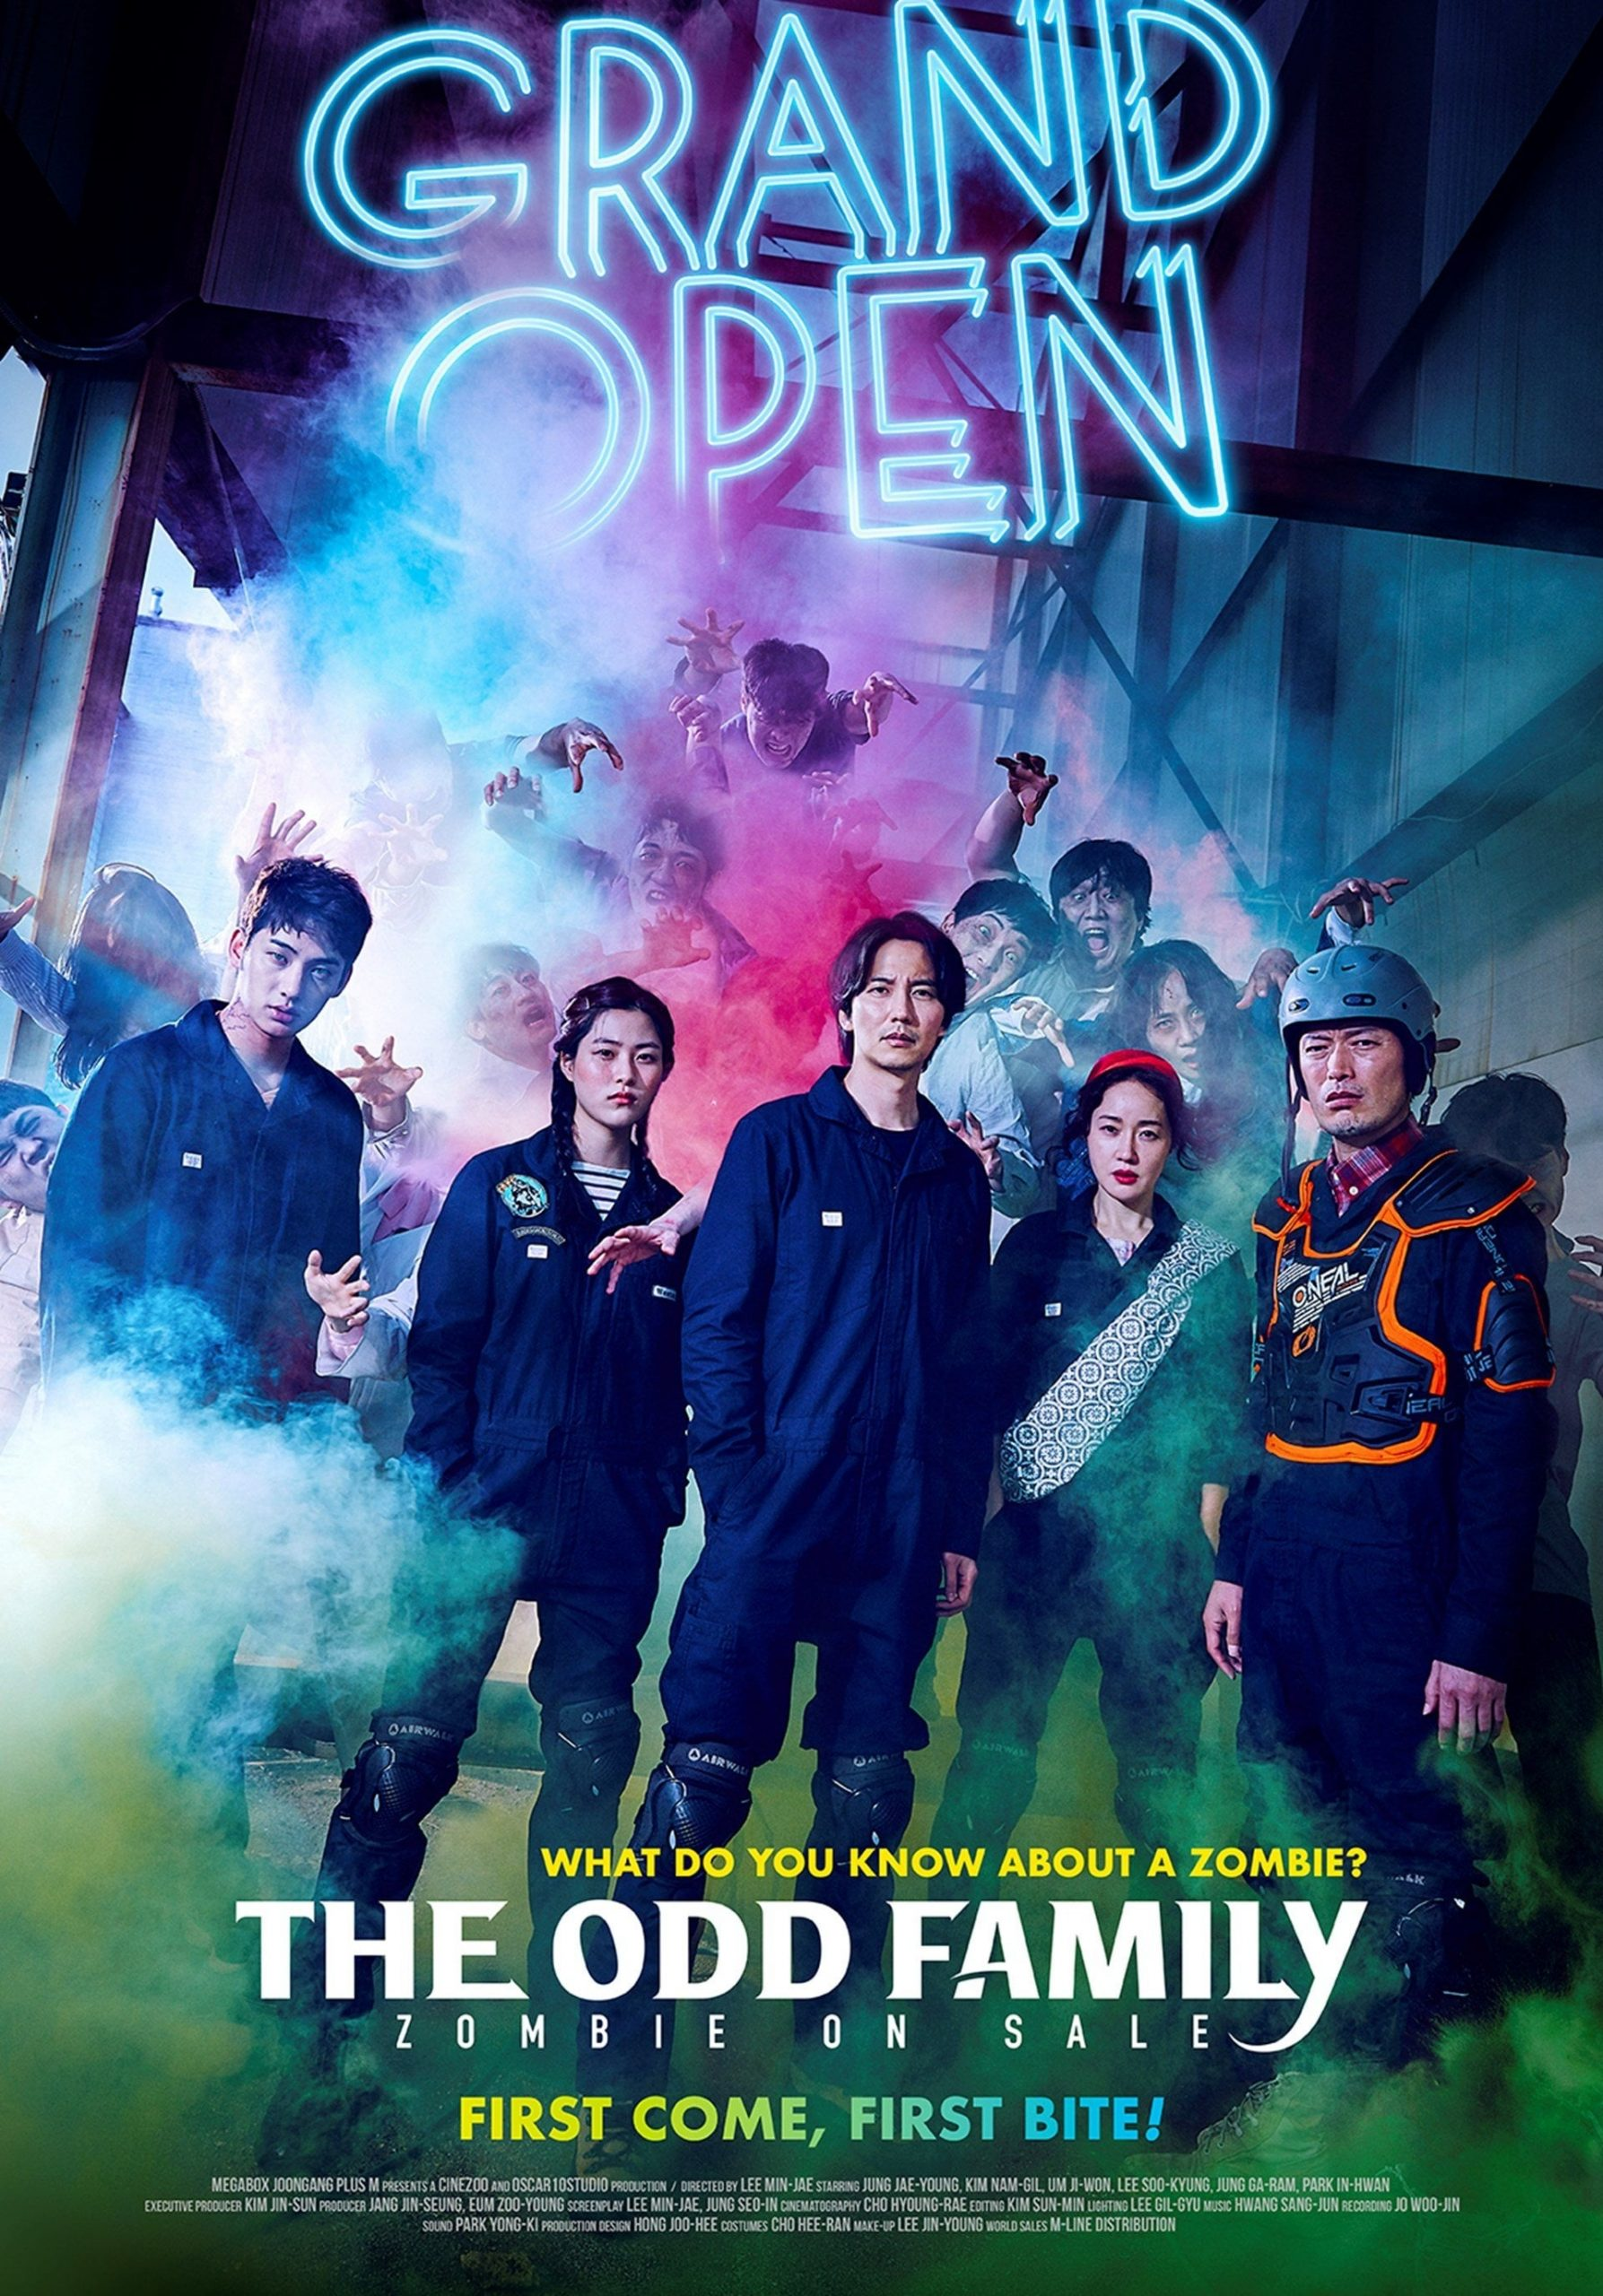 دانلود فیلم The Odd Family: Zombie on Sale 2019